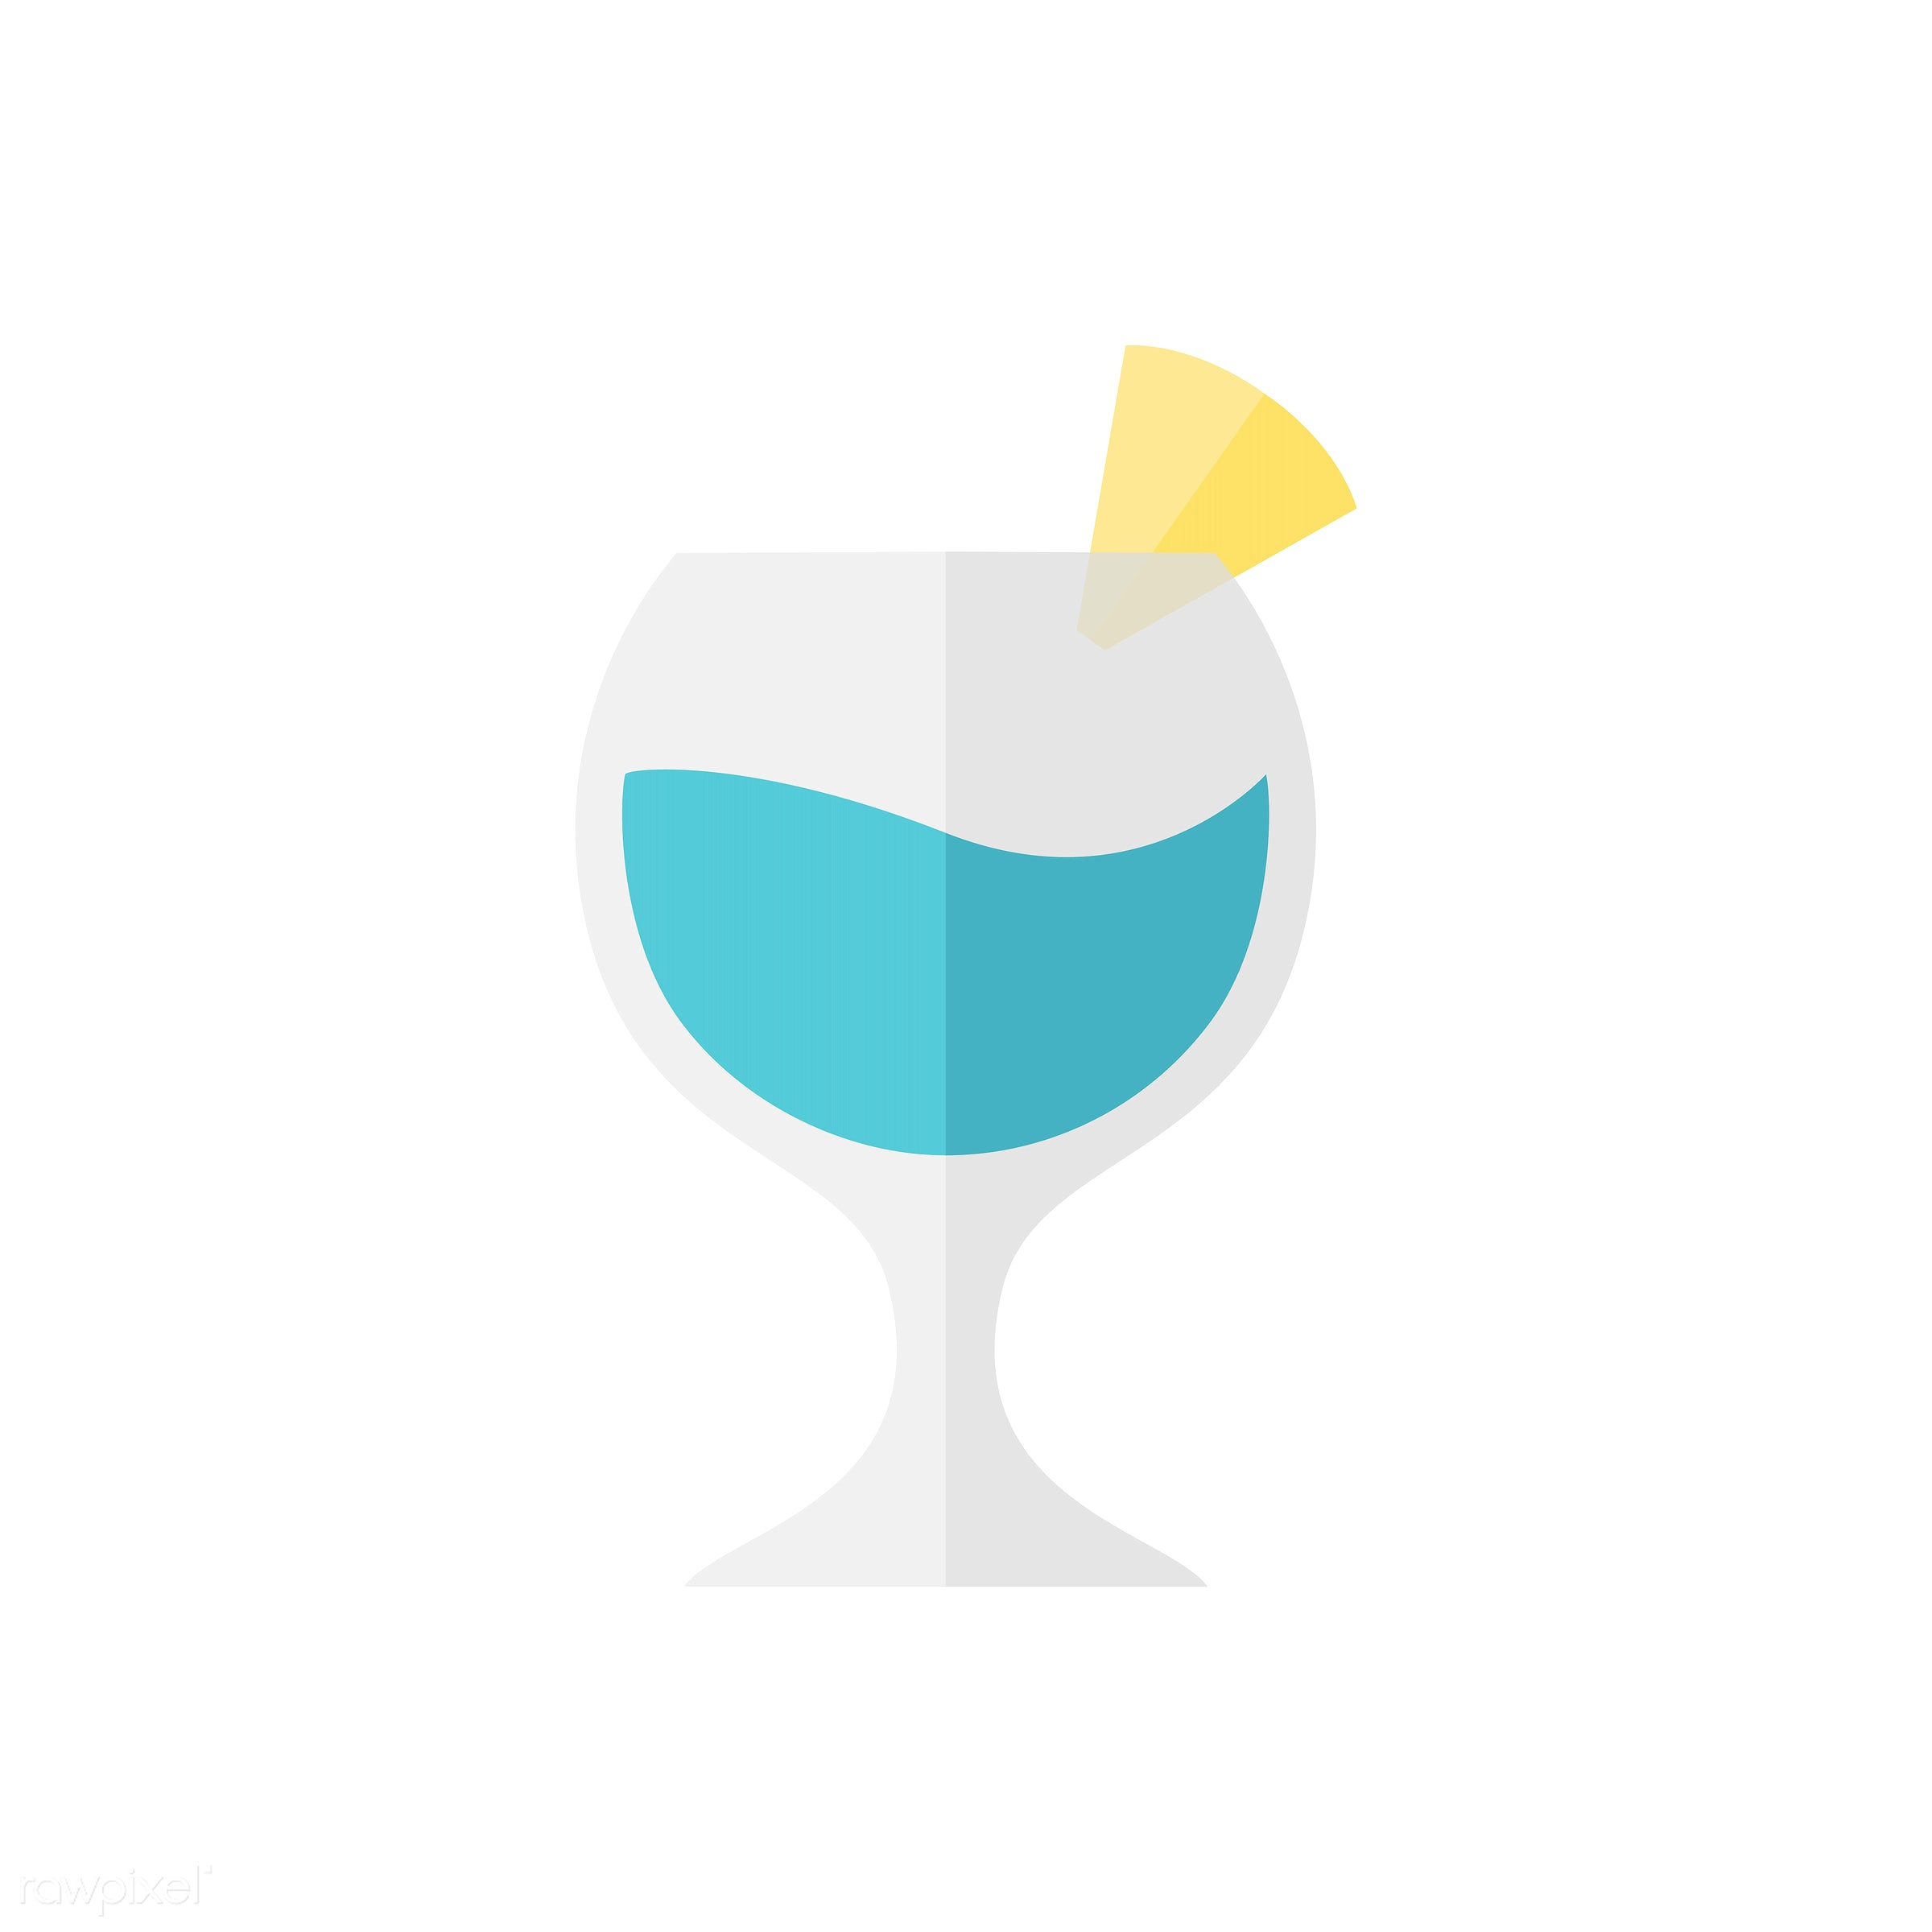 Cocktail vector - cocktail, alcohol, beverage, blue, colorful, cute, drink, graphic, icon, illustration, lemon, mocktail,...